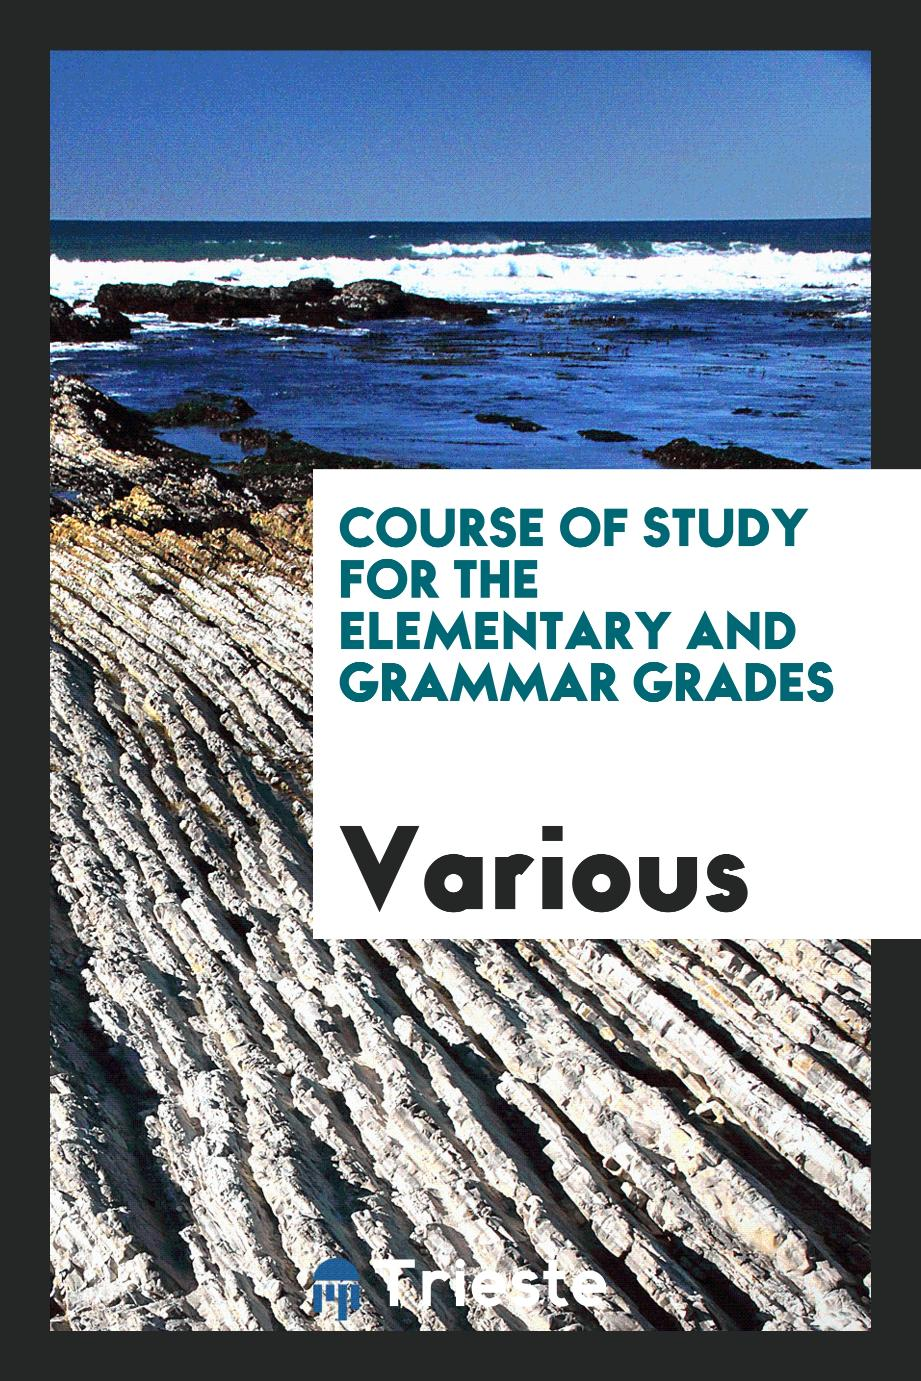 Course of study for the elementary and grammar grades